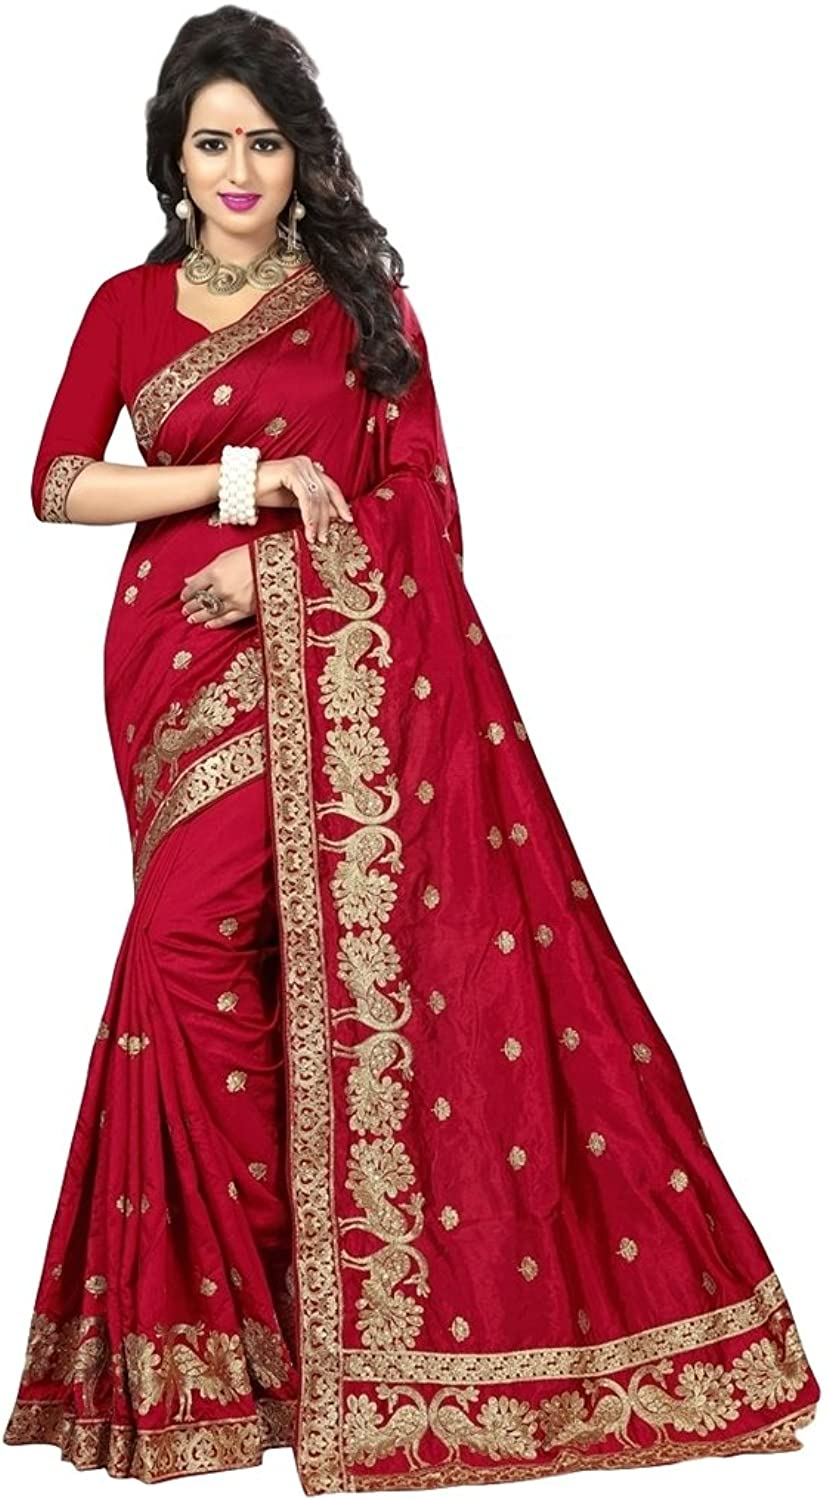 EthnicWear Exclusive Maroon Art Silk Festival Wedding Women Embroidered Zari Saries Saree Saris